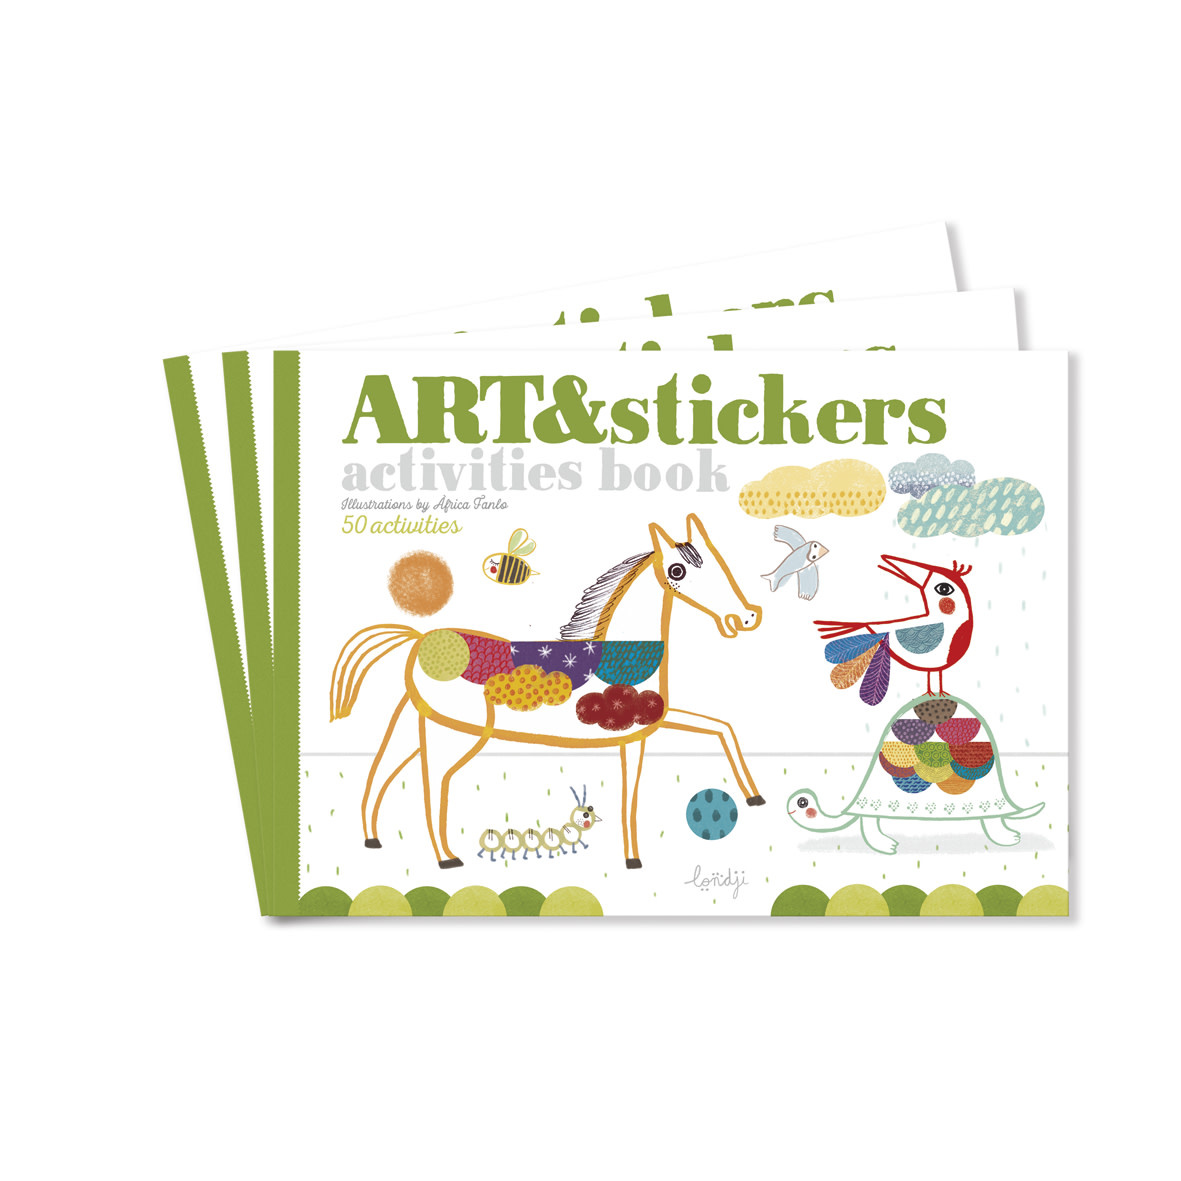 Activities book art & stickers-1